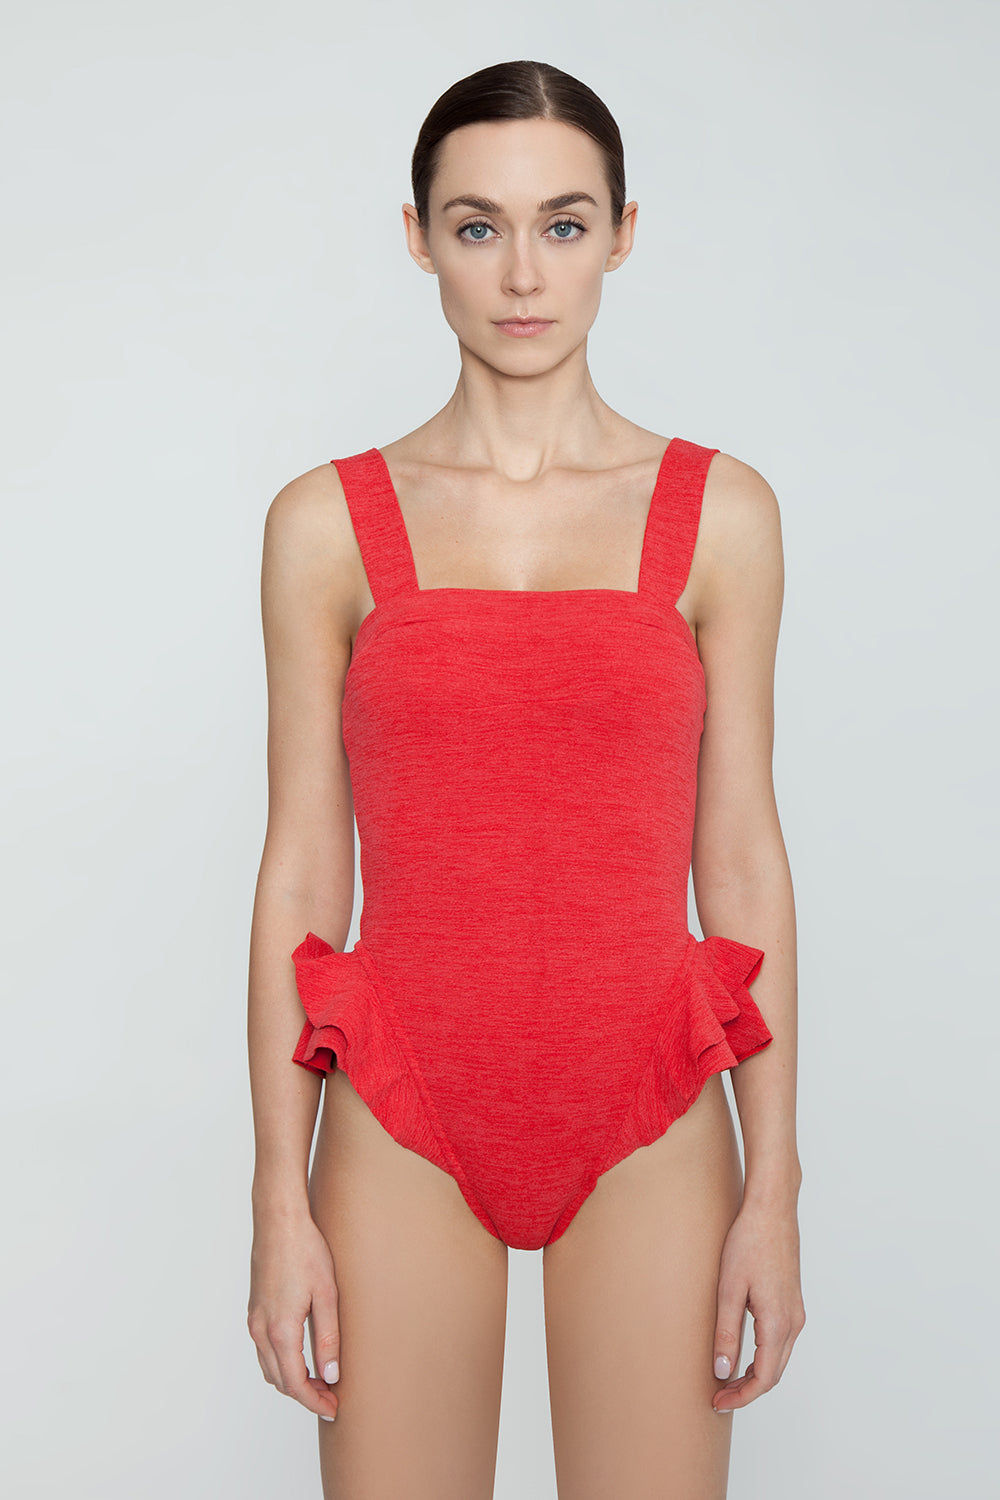 CLUBE BOSSA Barres Ruffle One Piece Swimsuit - Pepper Red One Piece | Pepper Red| Clube Bossa Barres Ruffle One Piece Swimsuit - Pepper Red  Square neckline  Thick shoulder straps Side ruffle detail at leg opening  High cut leg   Cheeky-moderate coverage Front View